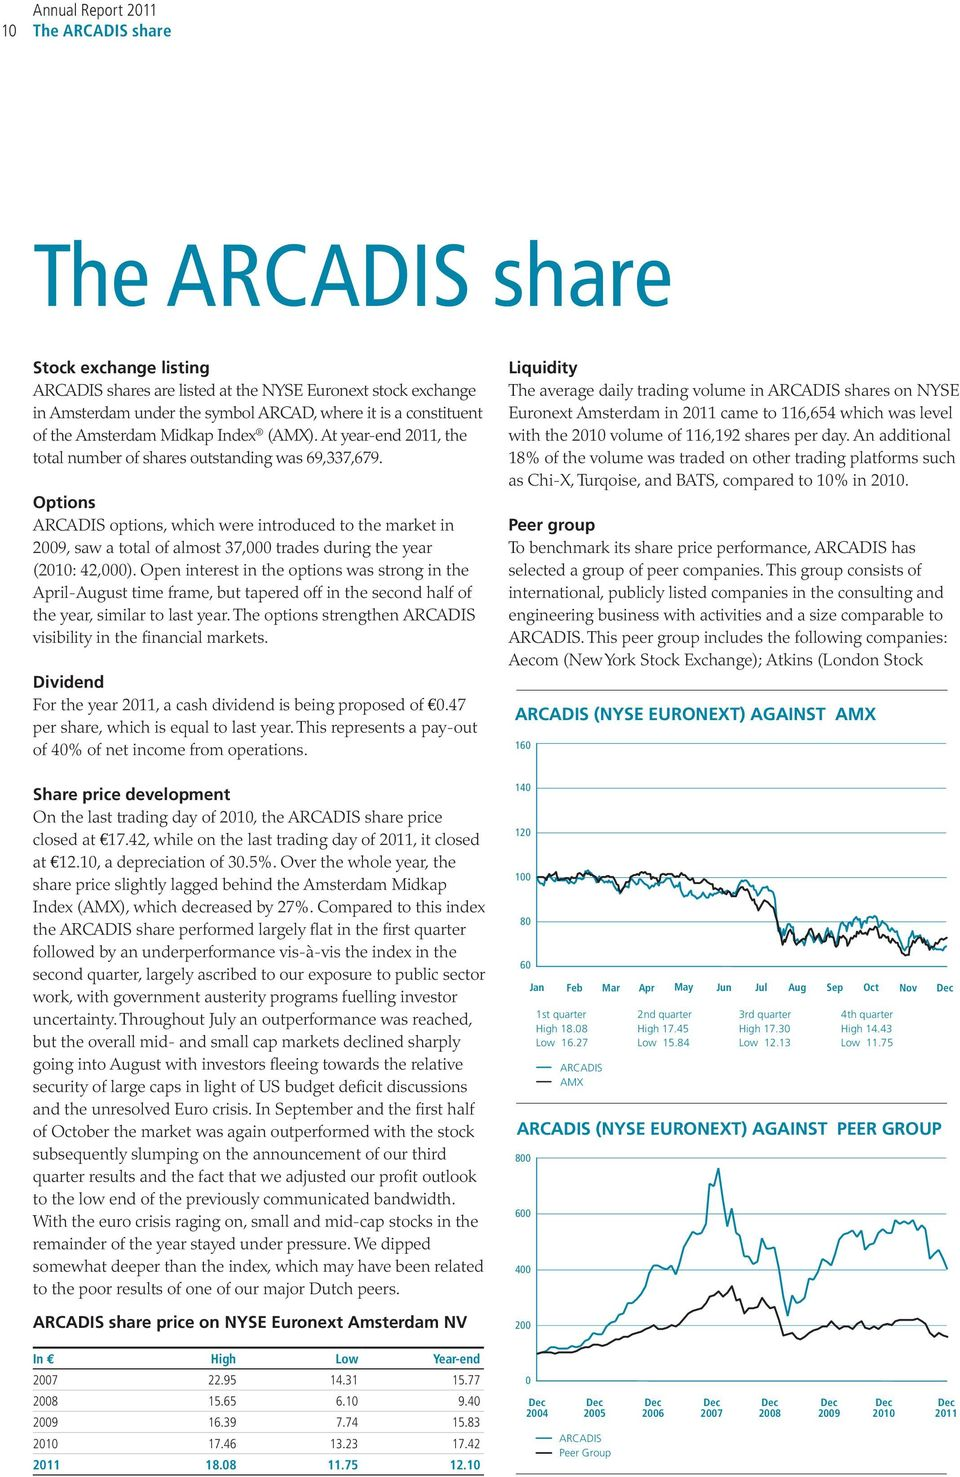 Options ARCADIS options, which were introduced to the market in 2009, saw a total of almost 37,000 trades during the year (2010: 42,000).